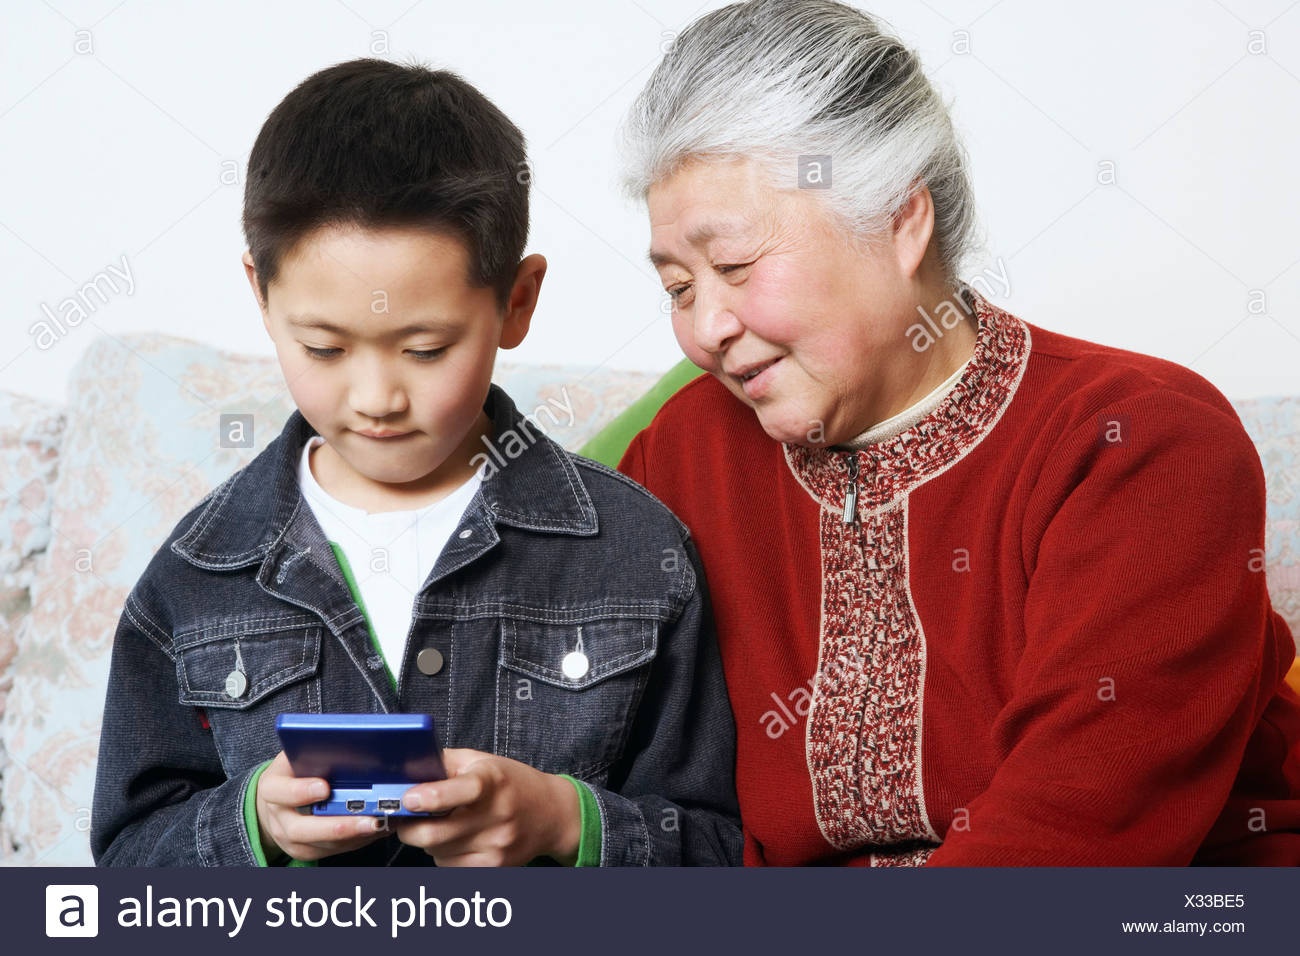 Close-up of a boy and his grandmother playing a video game - Stock Image